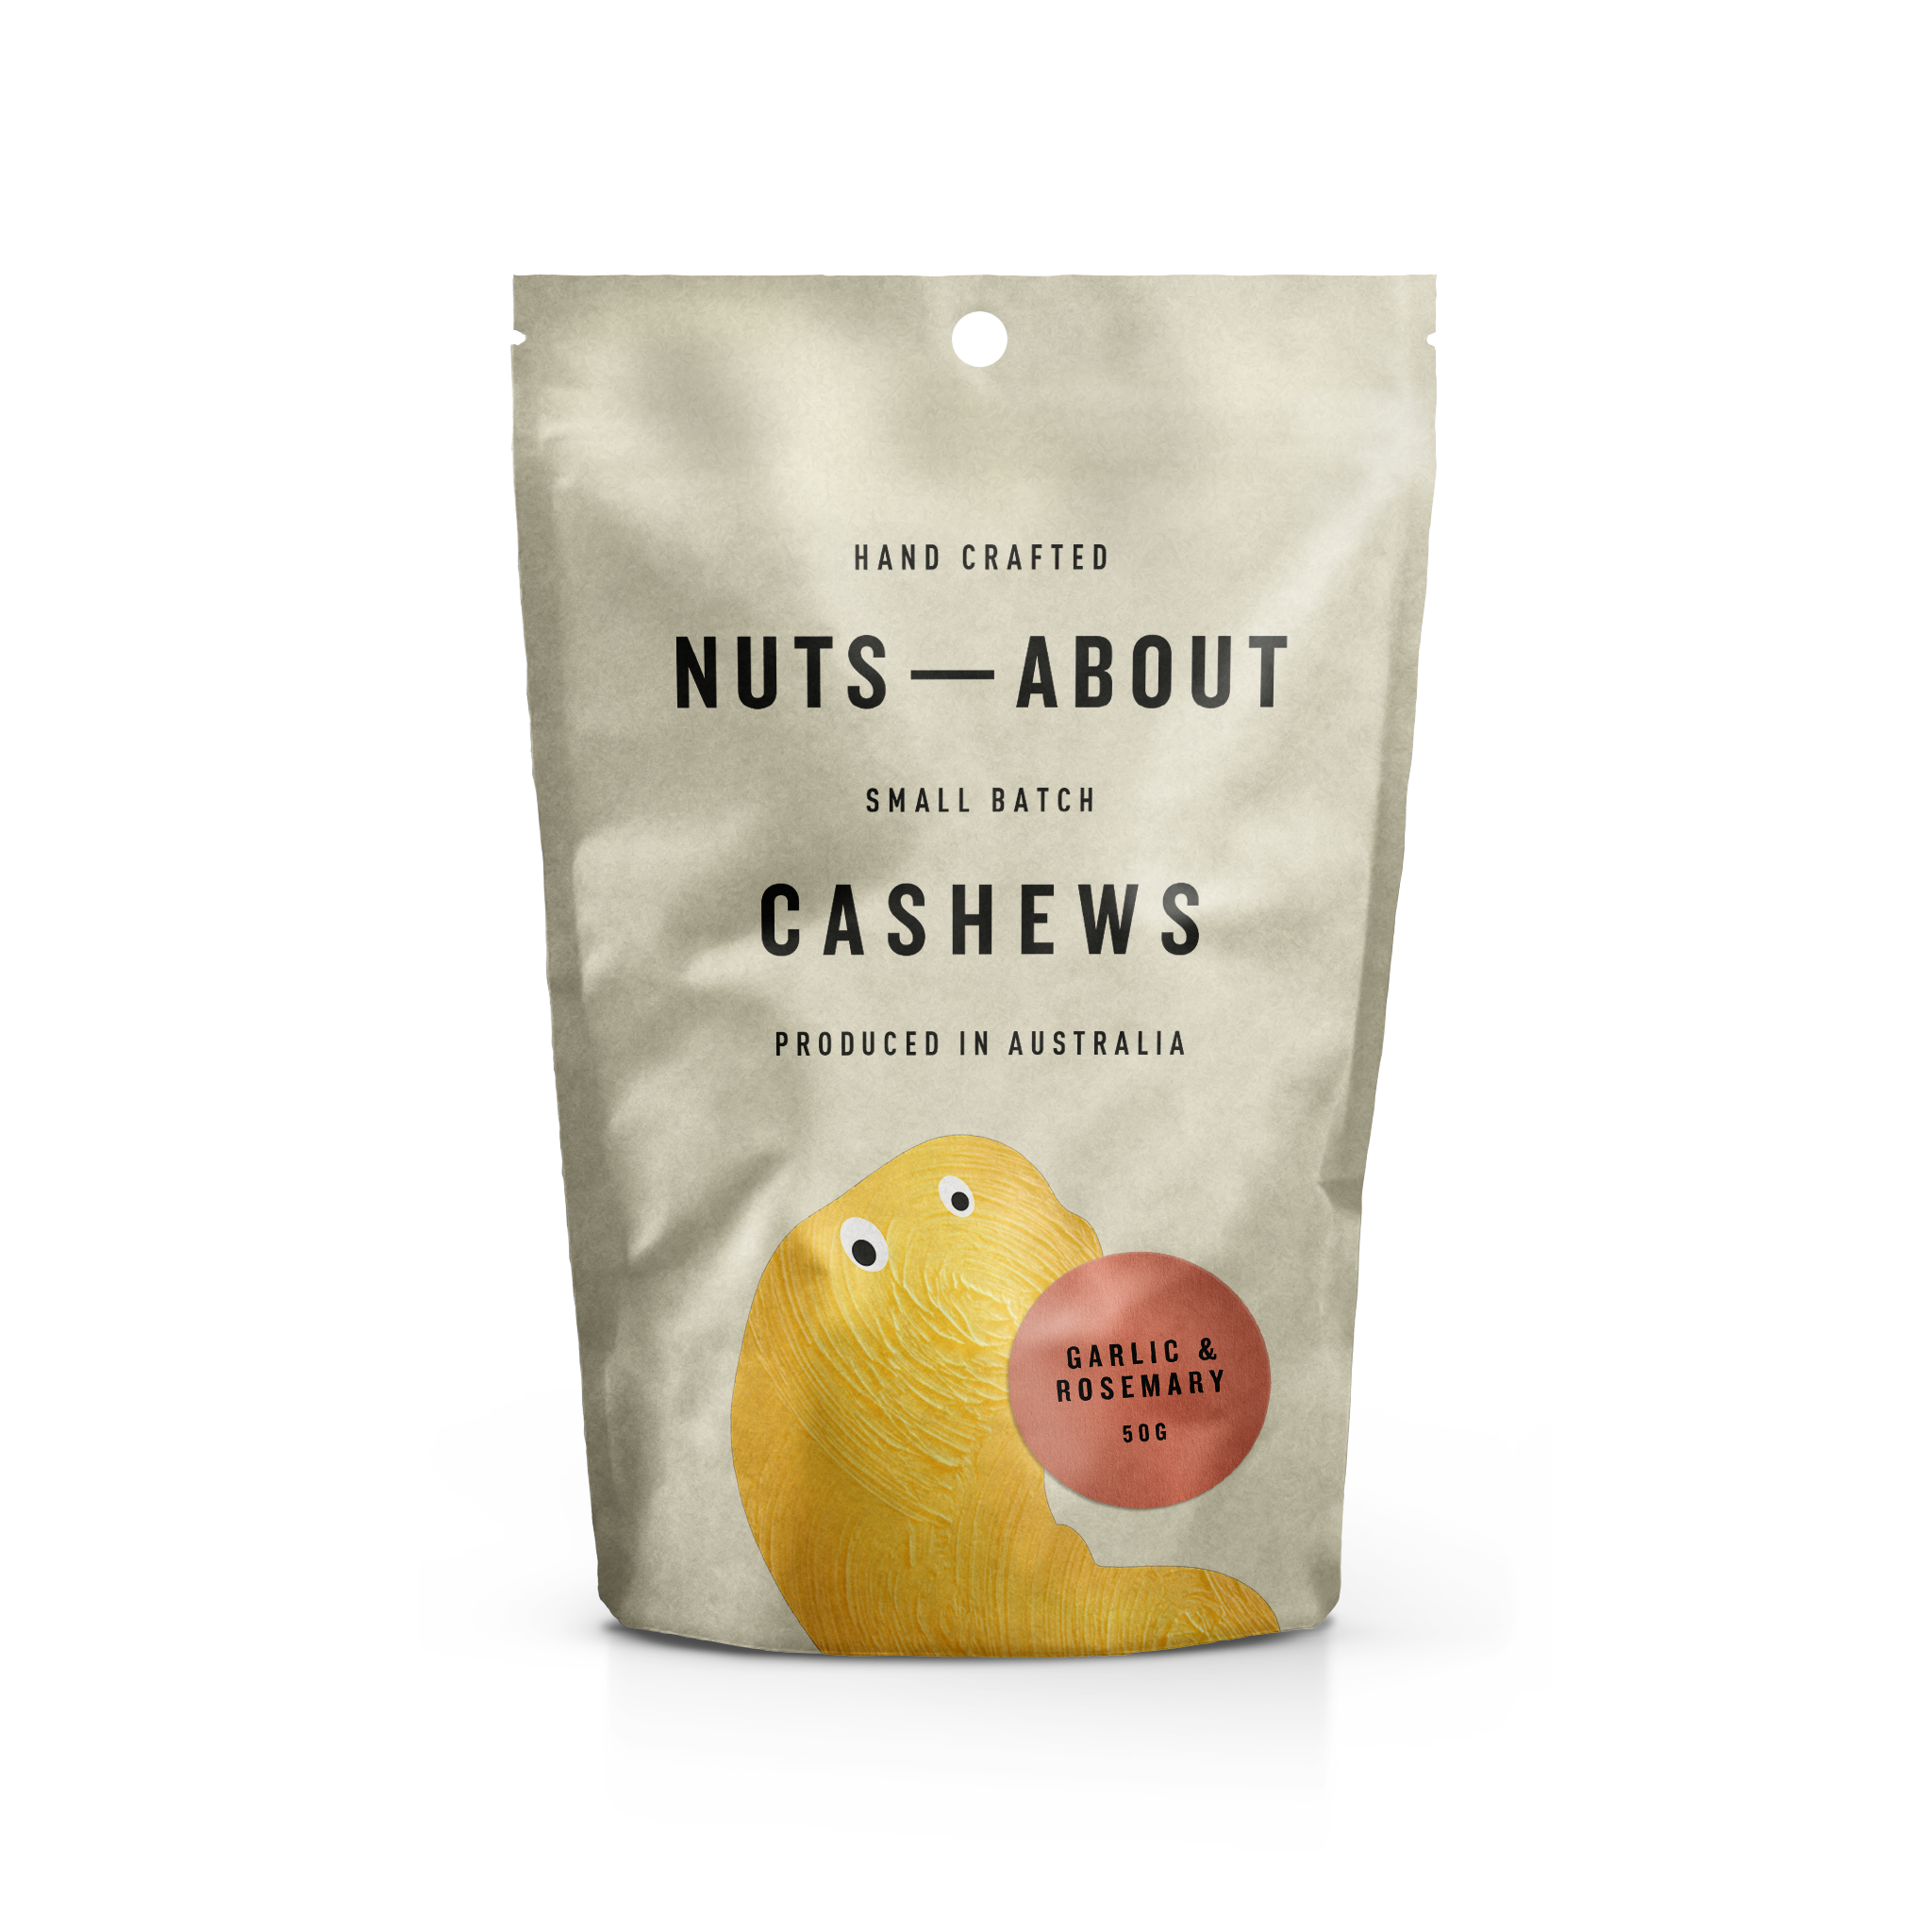 NUTS - ABOUT Garlic + Rosemary Cashews